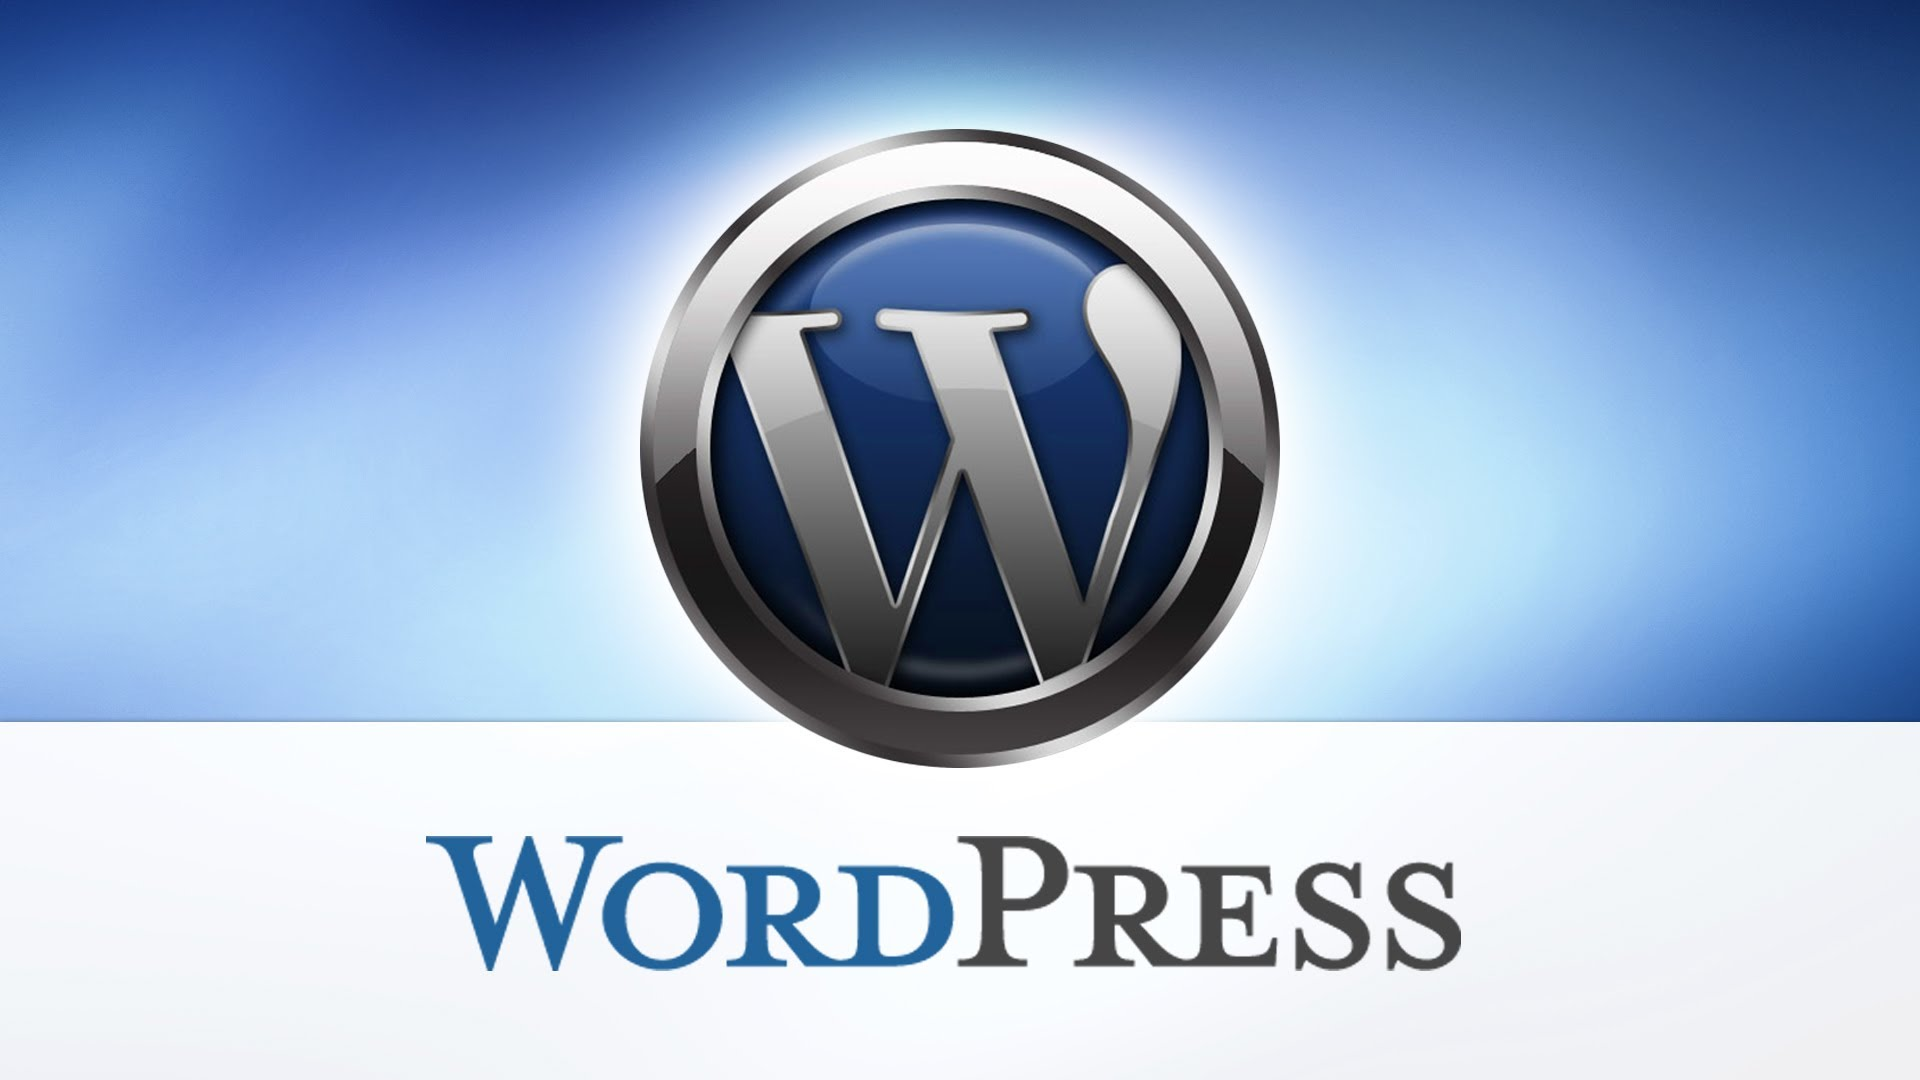 shortcomings of a wordpress website